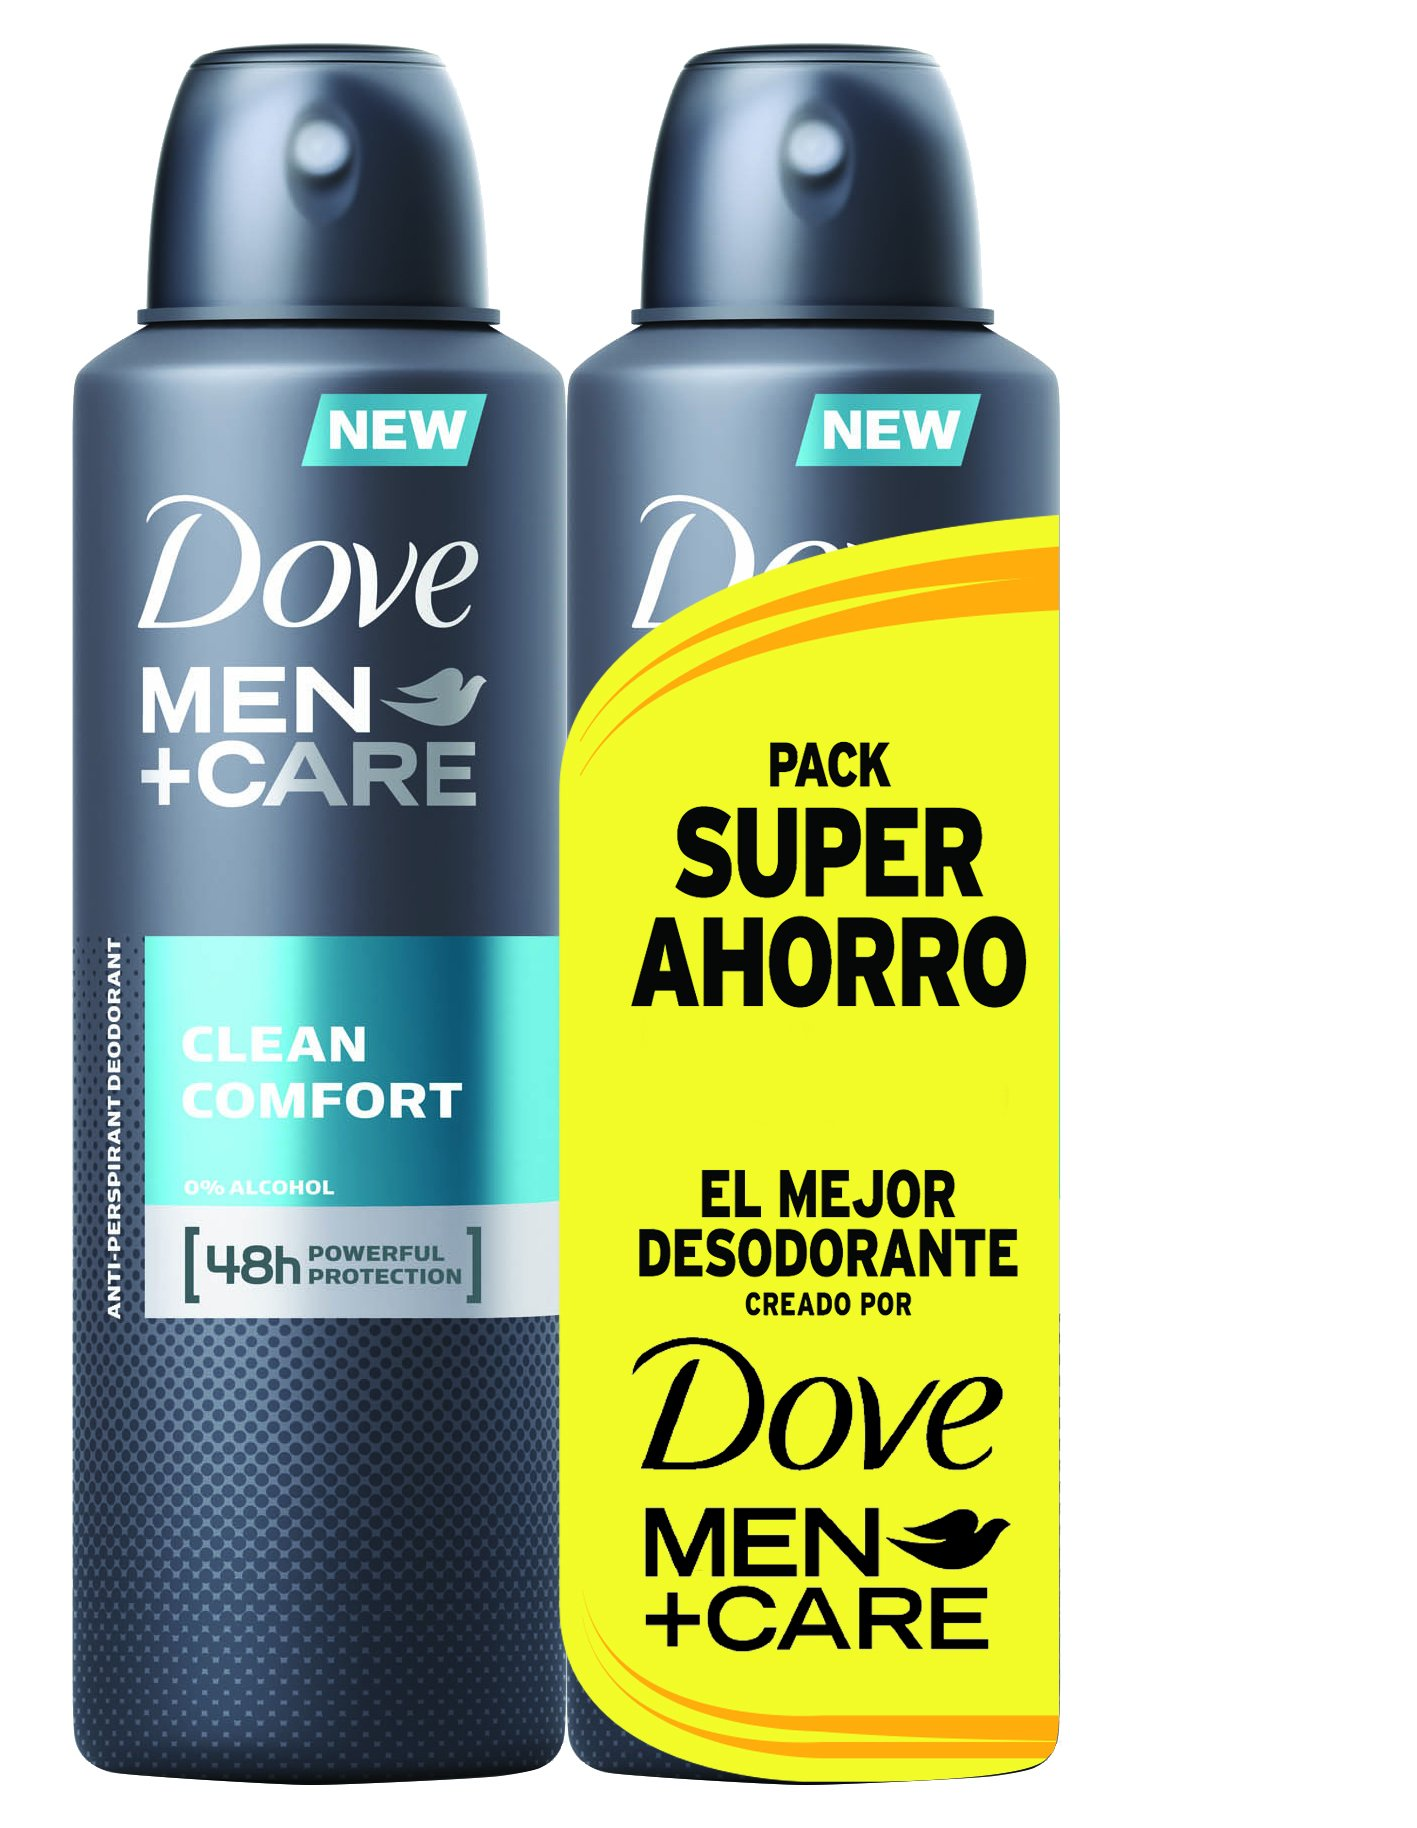 Dove Men Pack Ahorro Desodorante Clean Comfort – 2 Paquetes de 2 x 200 ml – Total: 800 ml